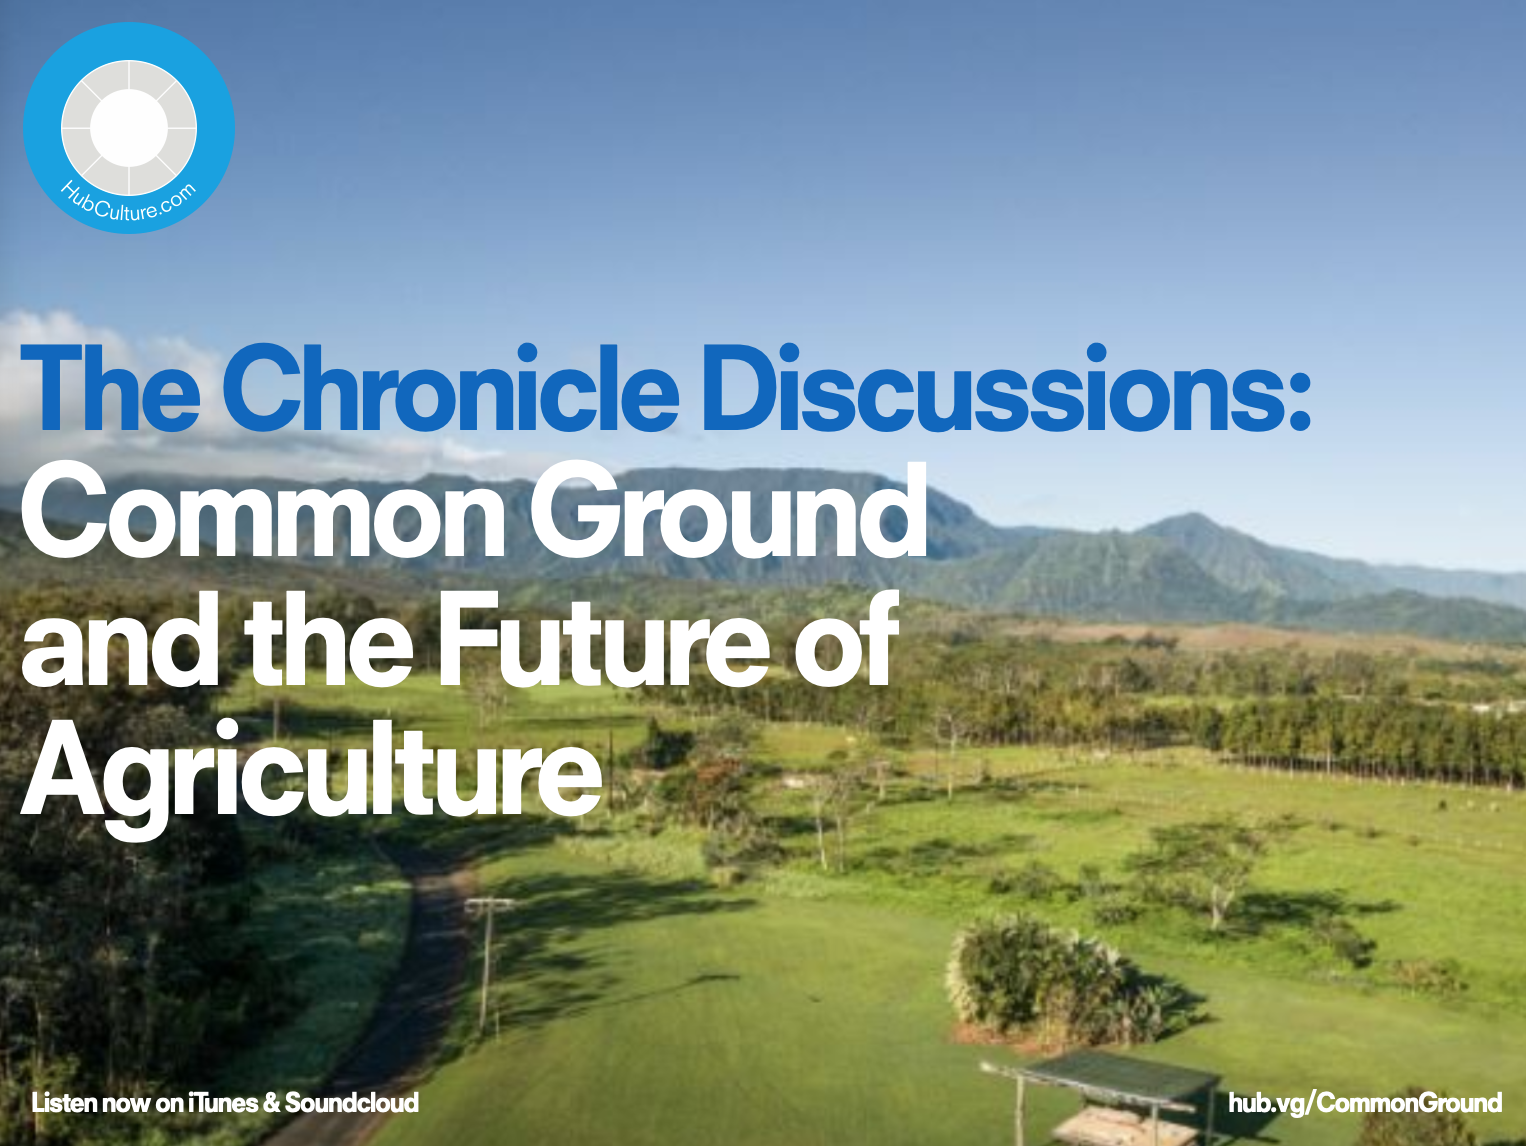 New Episode of The Chronicle Discussions: Common Ground and the Future of Agriculture